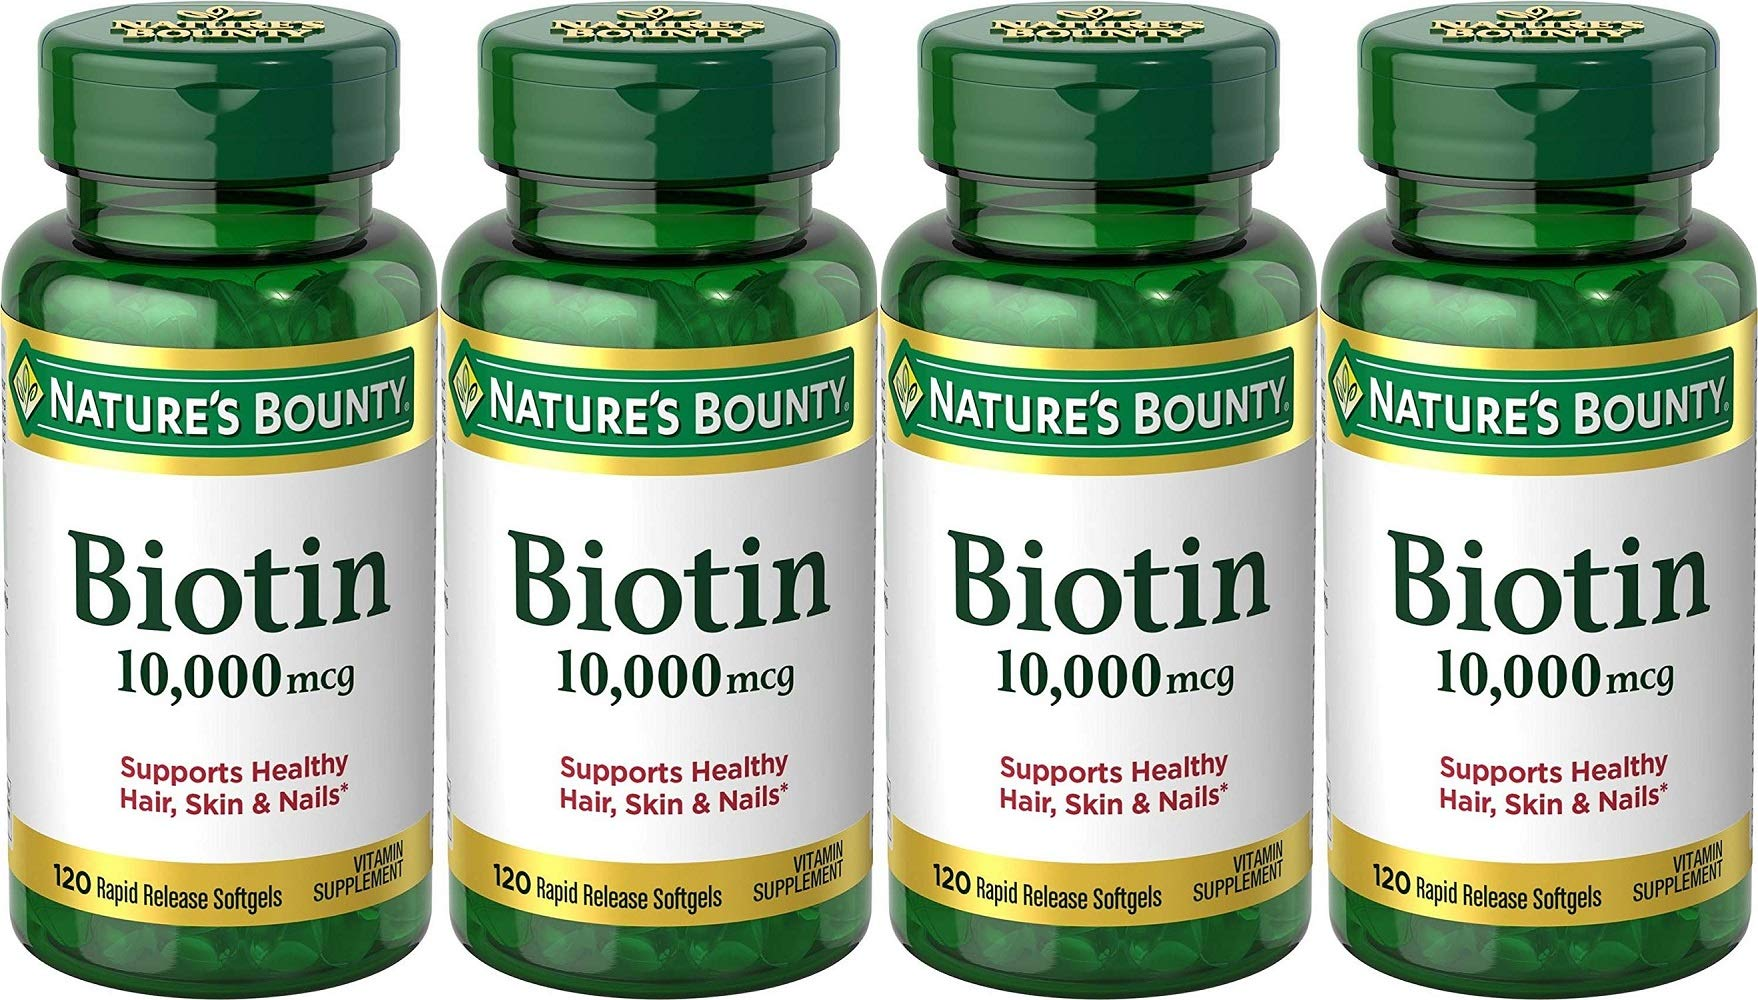 Nature's Bounty Biotin 10000 mcg Ultra Strength - 120 Softgels, Pack of 4 by Nature's Bounty